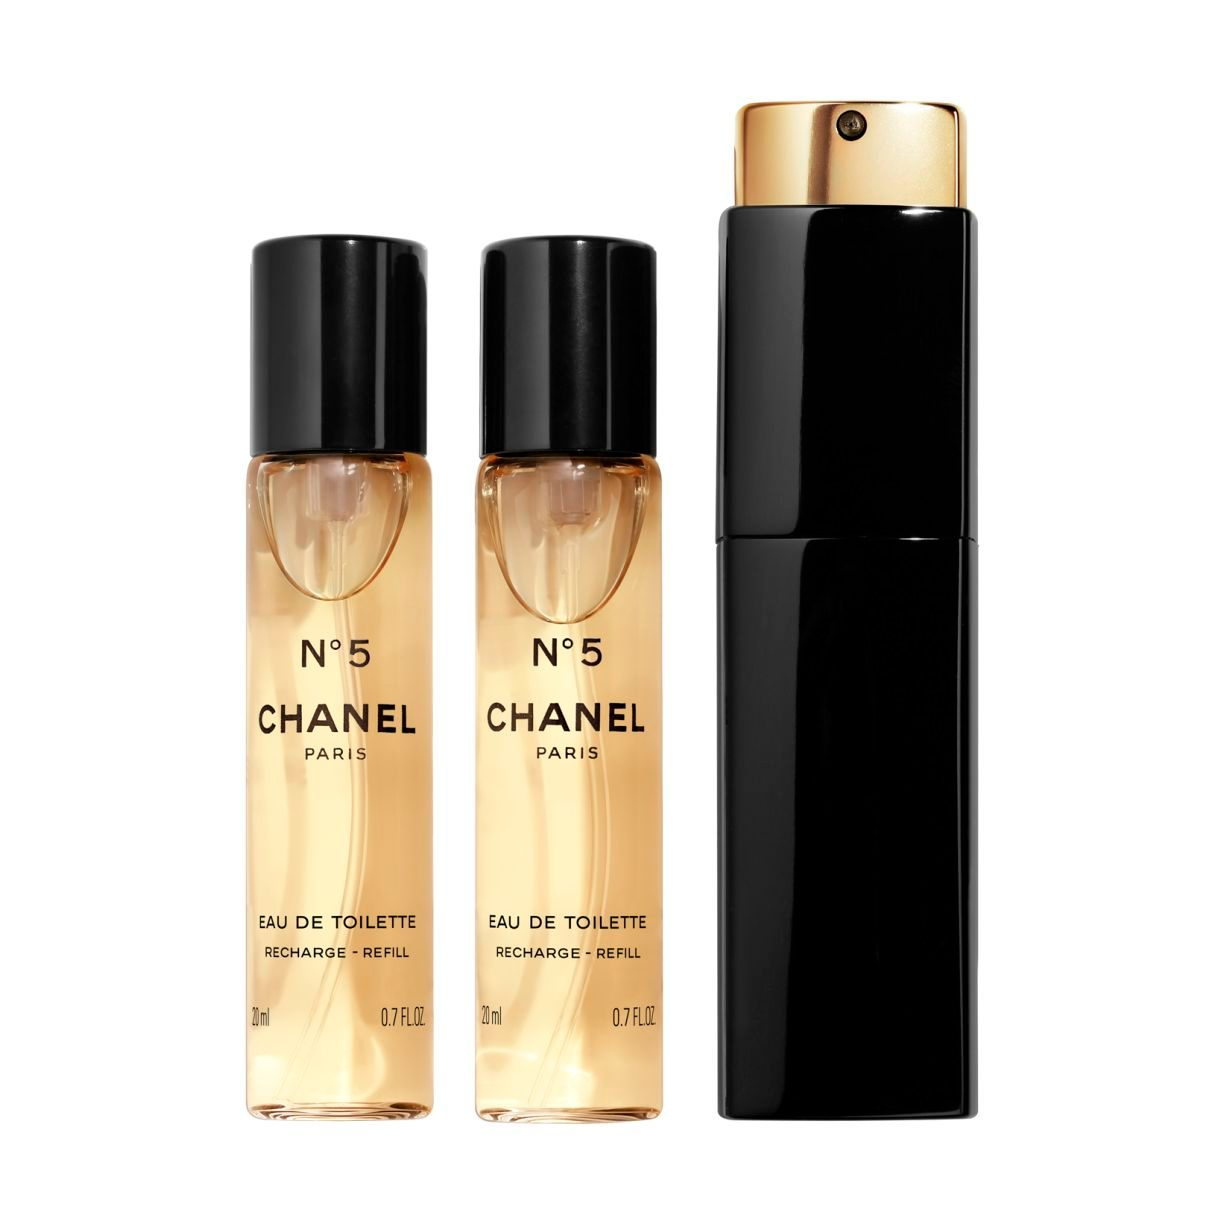 N°5 EAU DE TOILETTE PURSE SPRAY 3x20ml